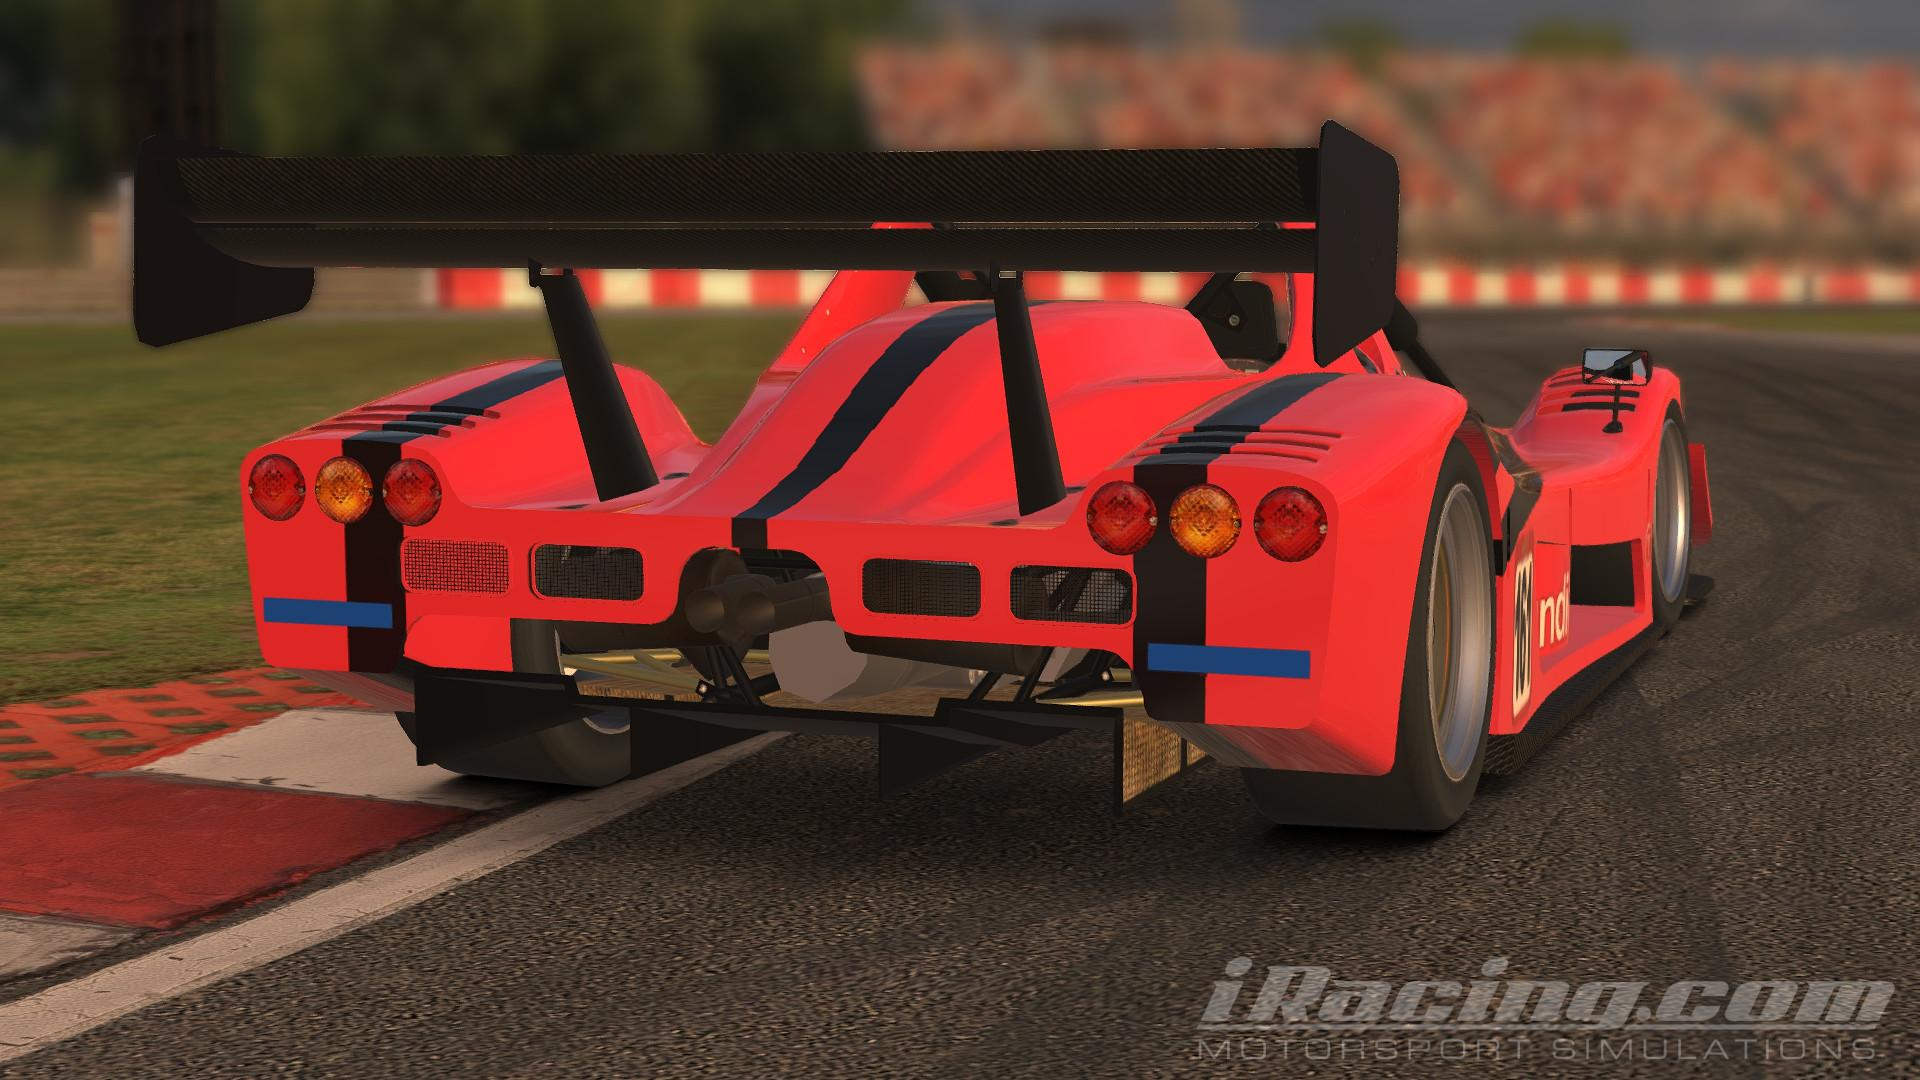 Preview of Undiecar Radical by Ryan Hellyer